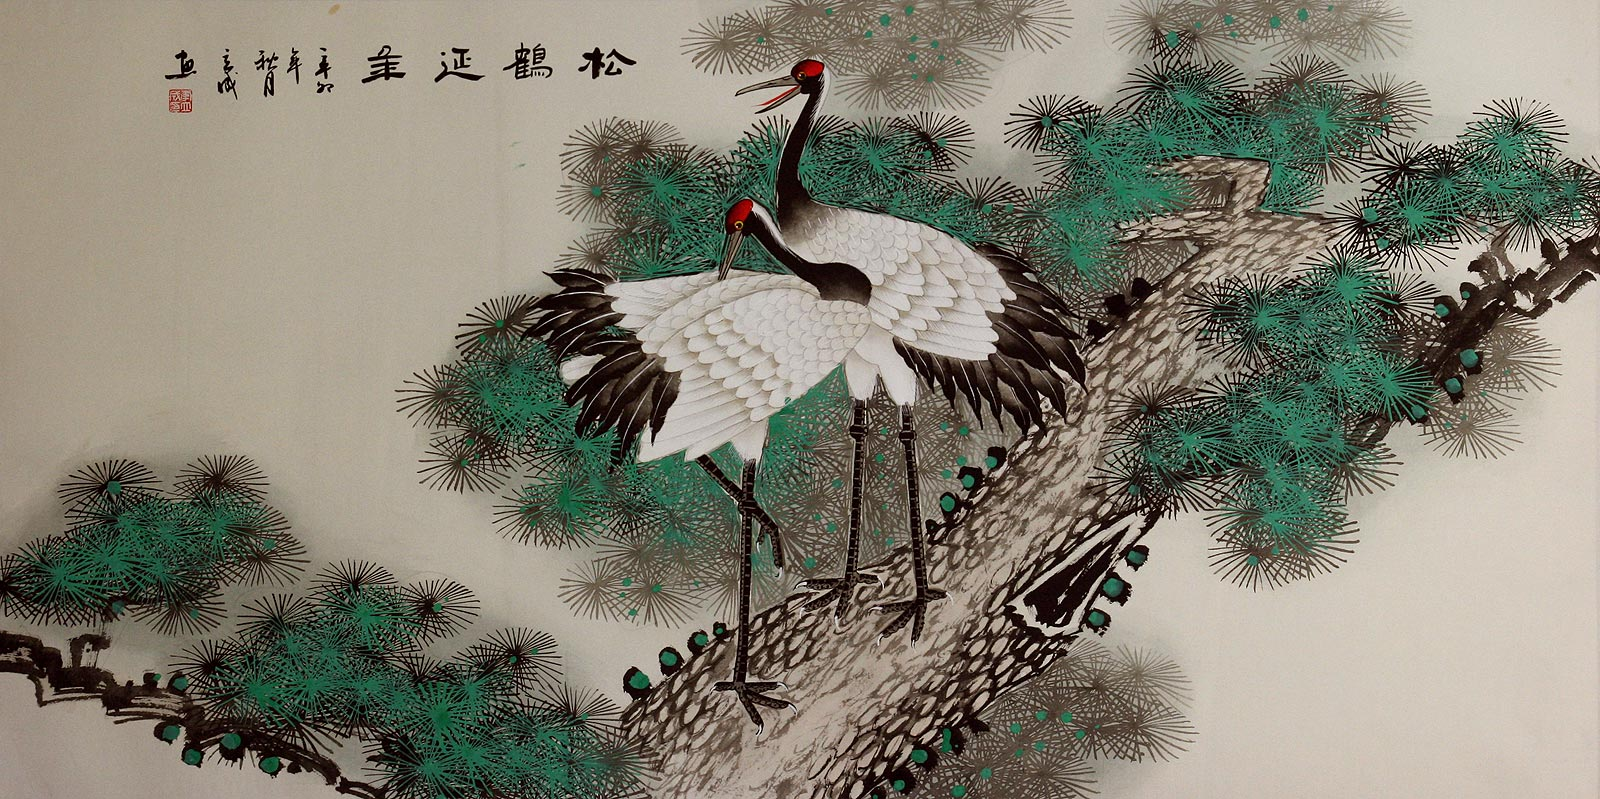 Asian Cranes and Pine Tree - Large Painting